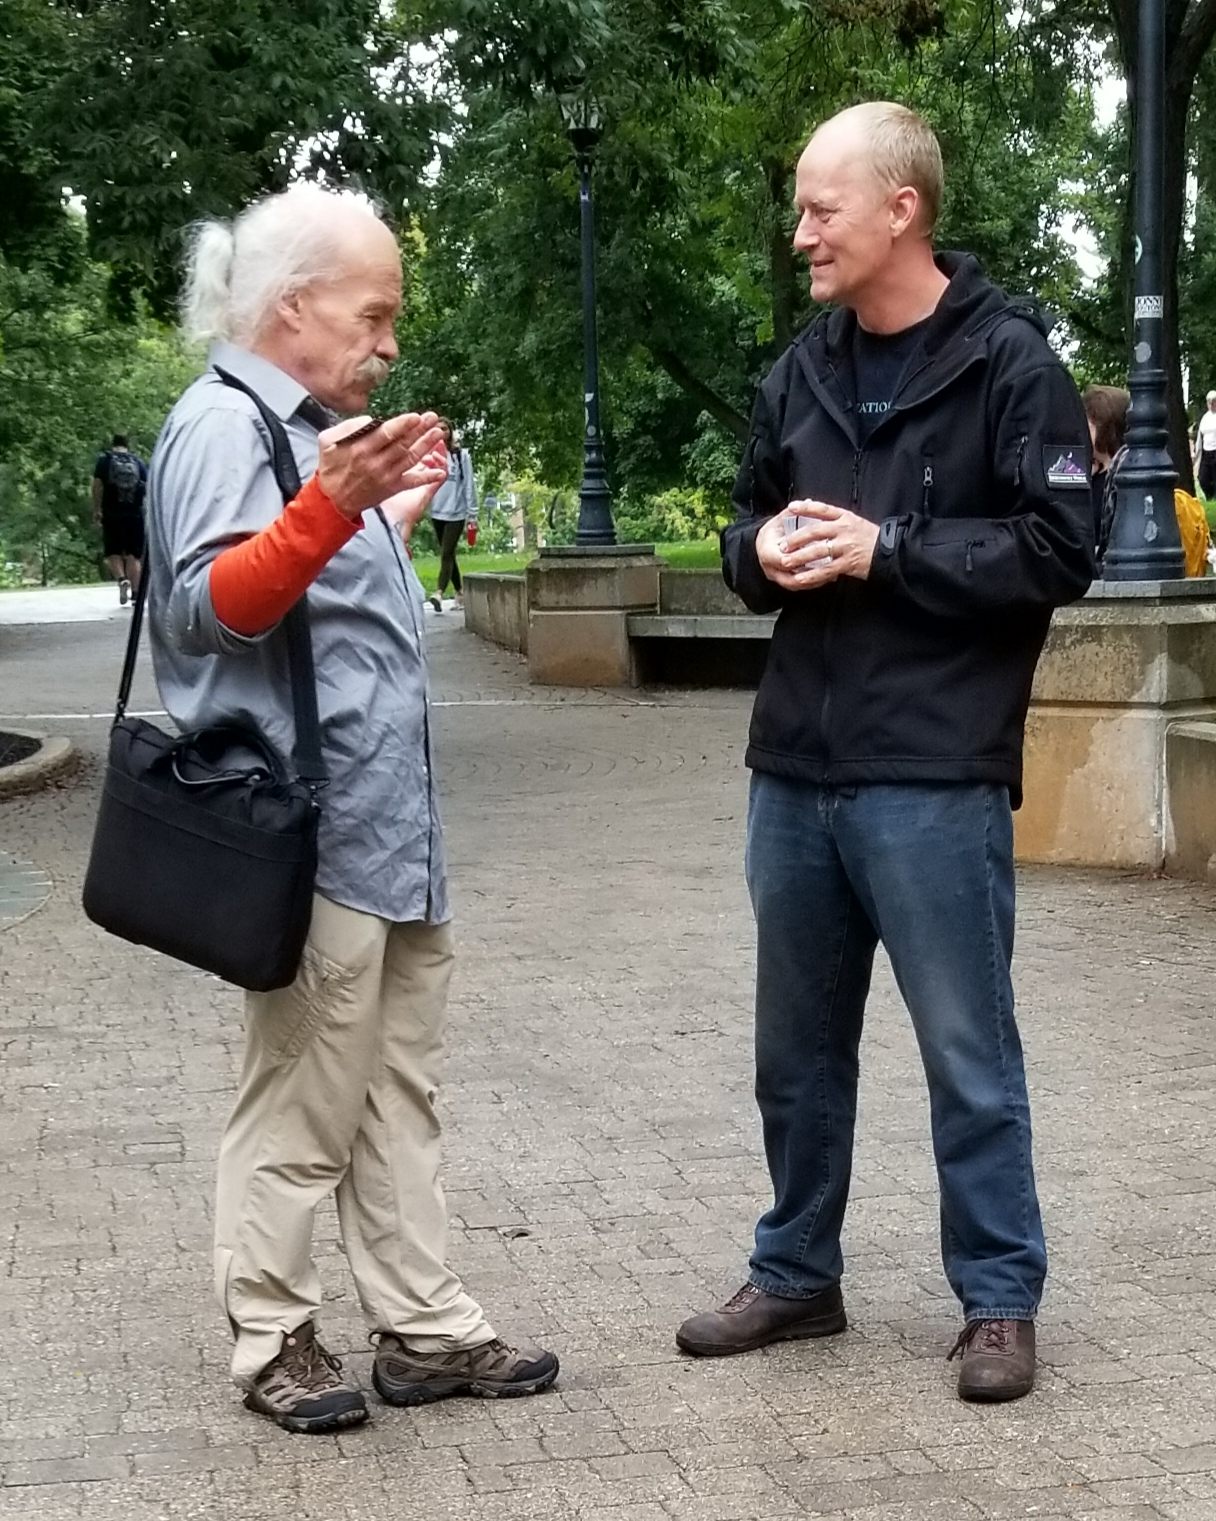 We meet some unusual folks. This gentleman passionately tried to persuade Chris that Jesus never existed. Chris was patient and shared the gospel message. There's hope for everybody!